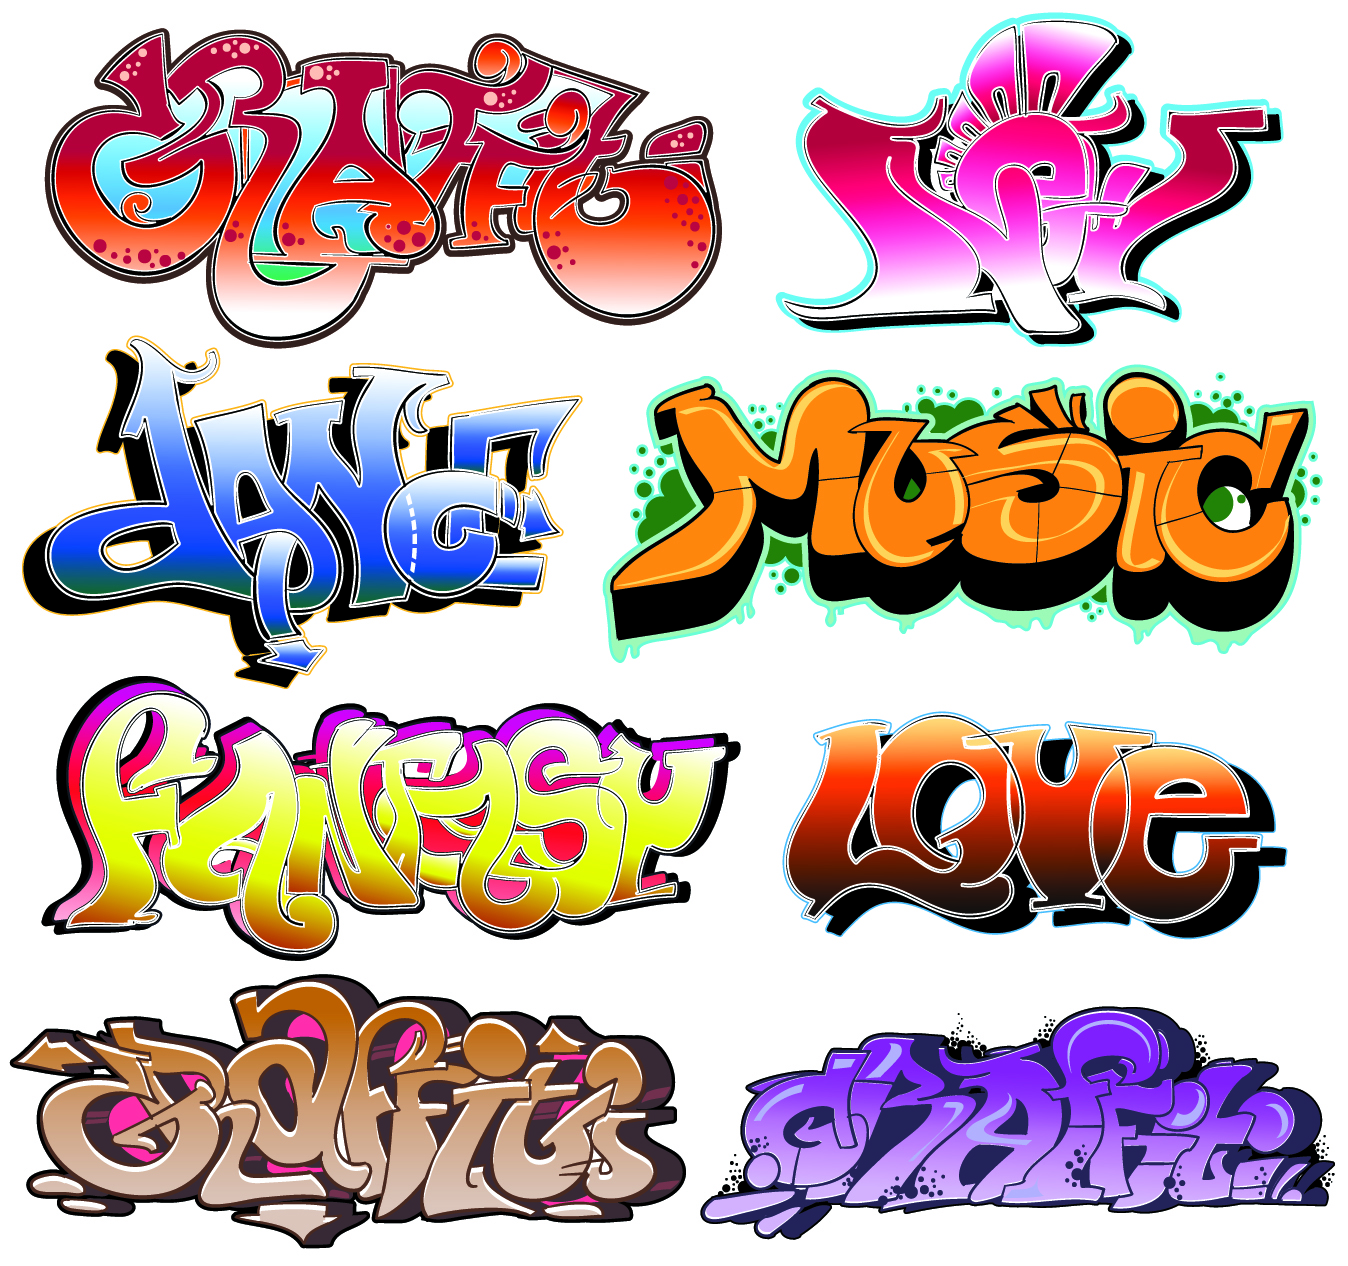 Graffiti Styles Fonts And Design